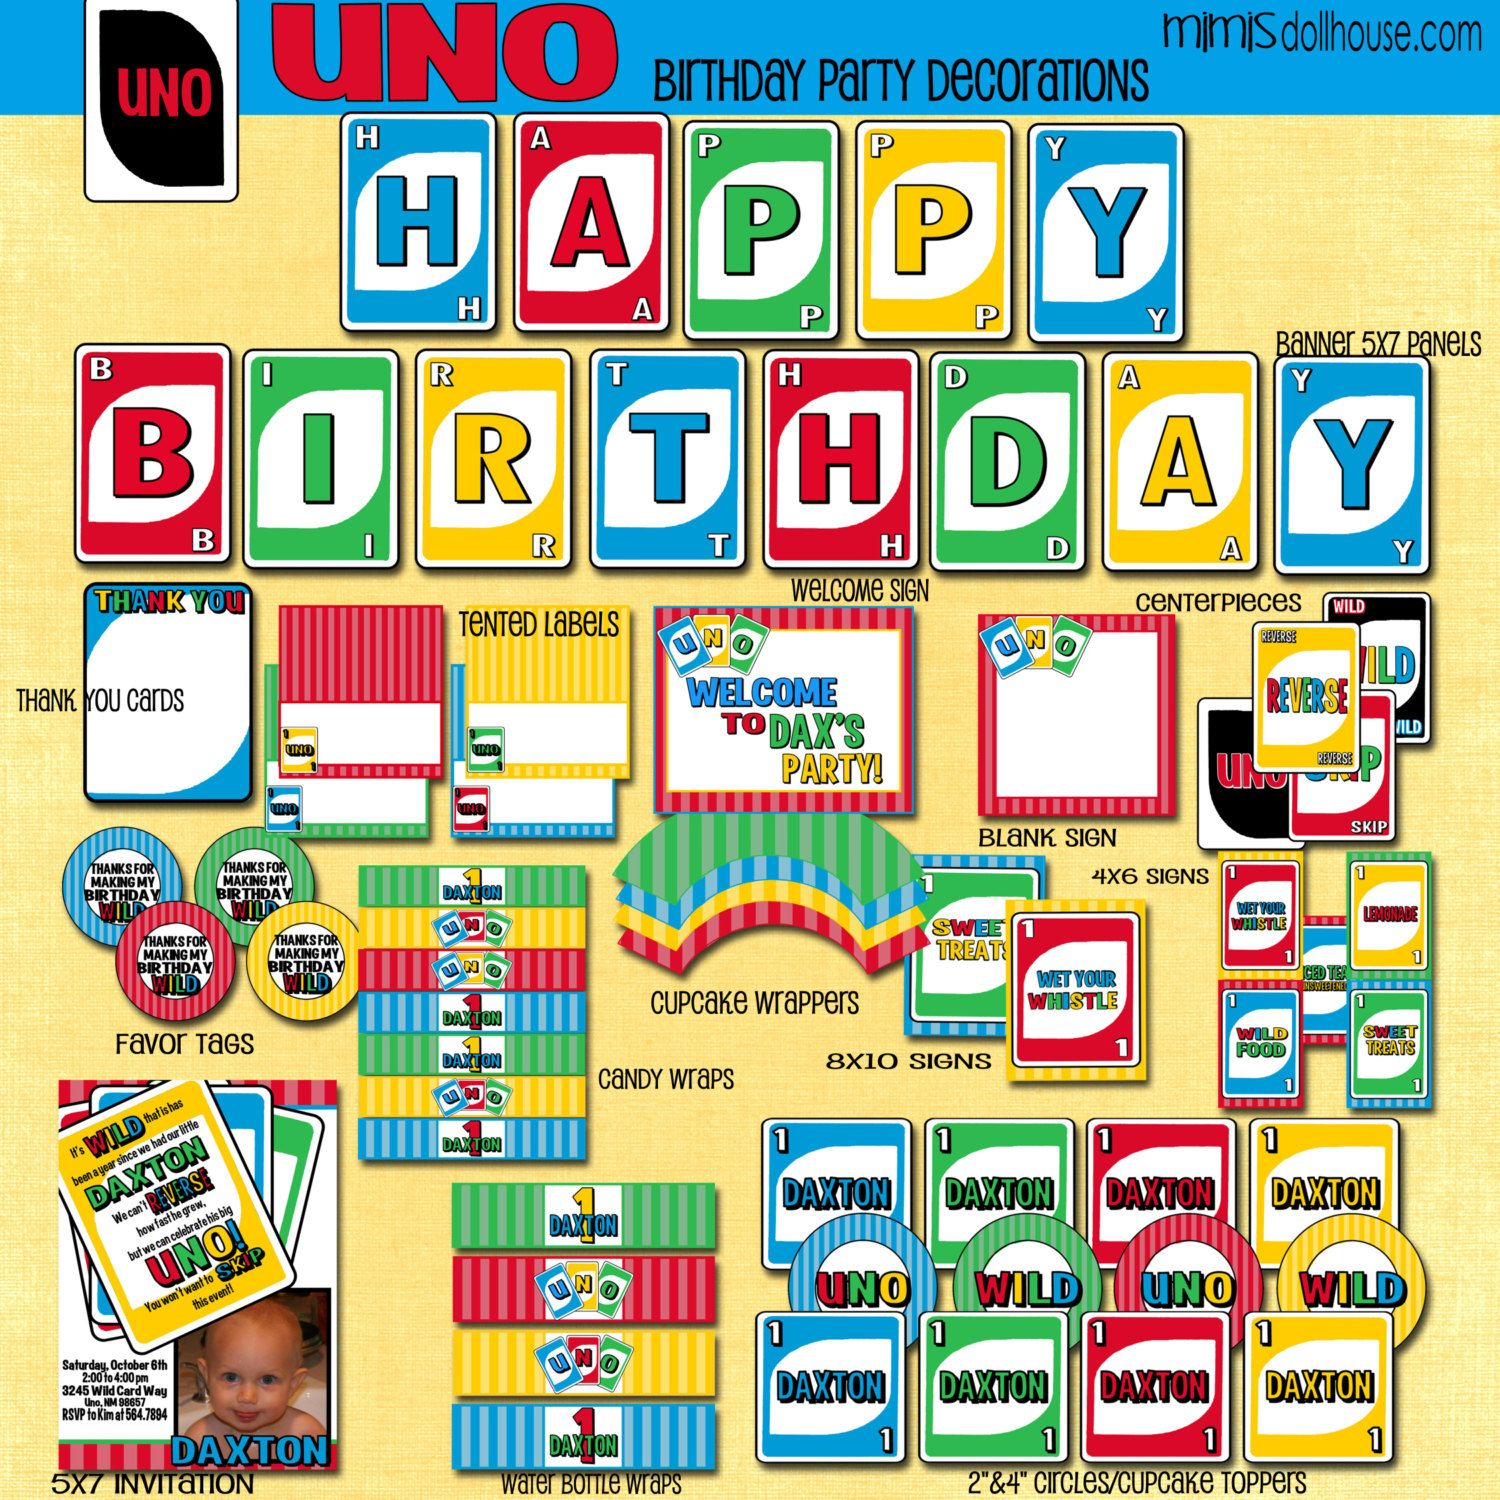 image relating to Uno Coupons Printable called Printable uno playing cards pdf - Soon after easter sweet sale